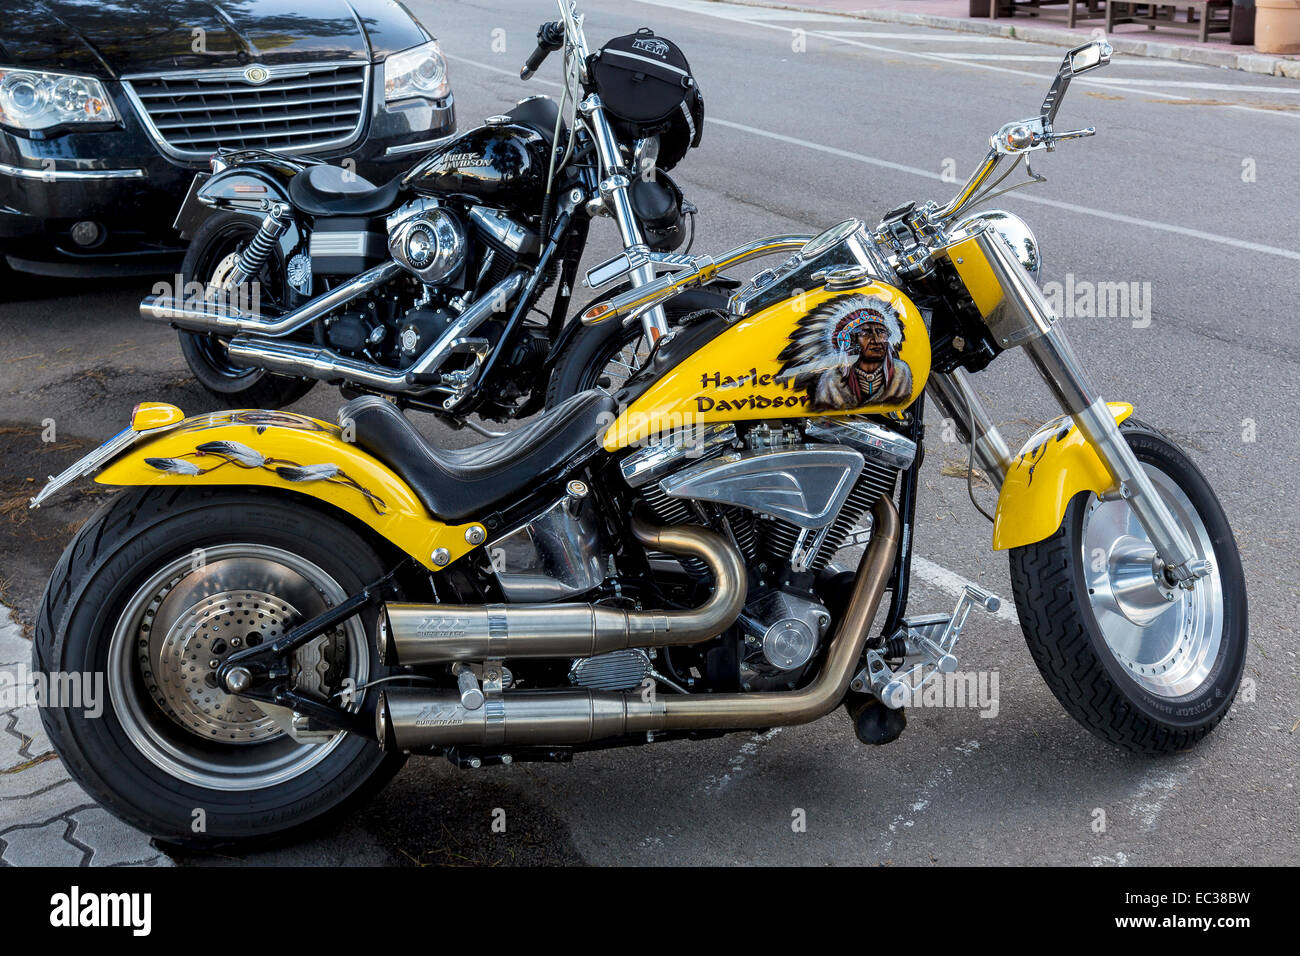 Two Harley Davidson parked on the roadside, Porto Colom, Majorca, Balearic Islands, Spain - Stock Image